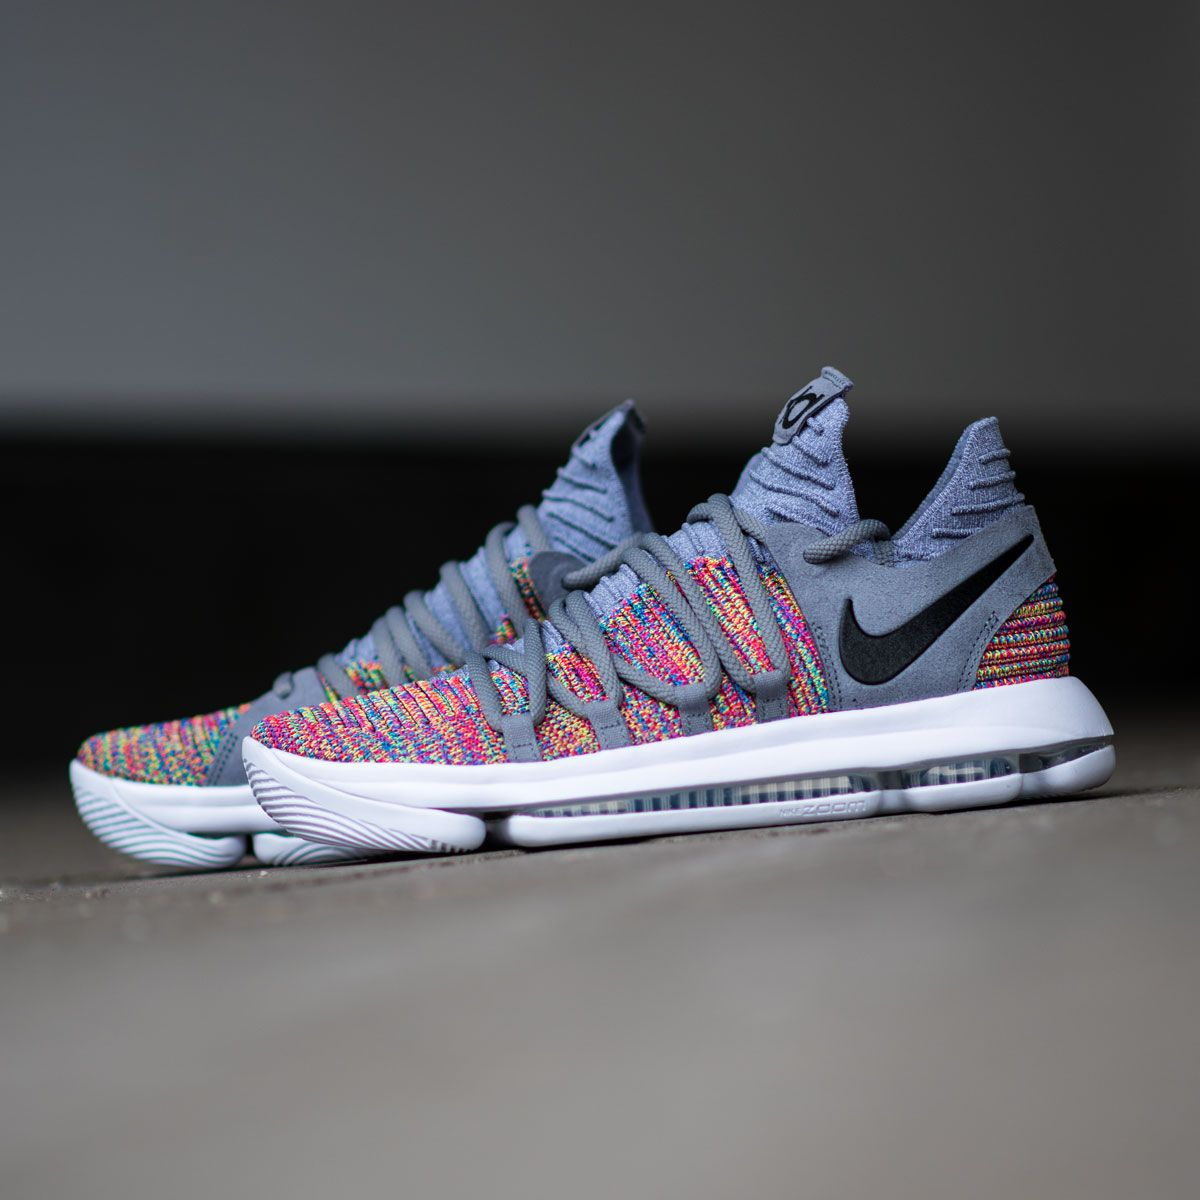 cheap for discount c3696 bfc36 The rainbow version of his signature shoe, the Nike KD 10 is available now  on KICKZ.com and in selected stores!